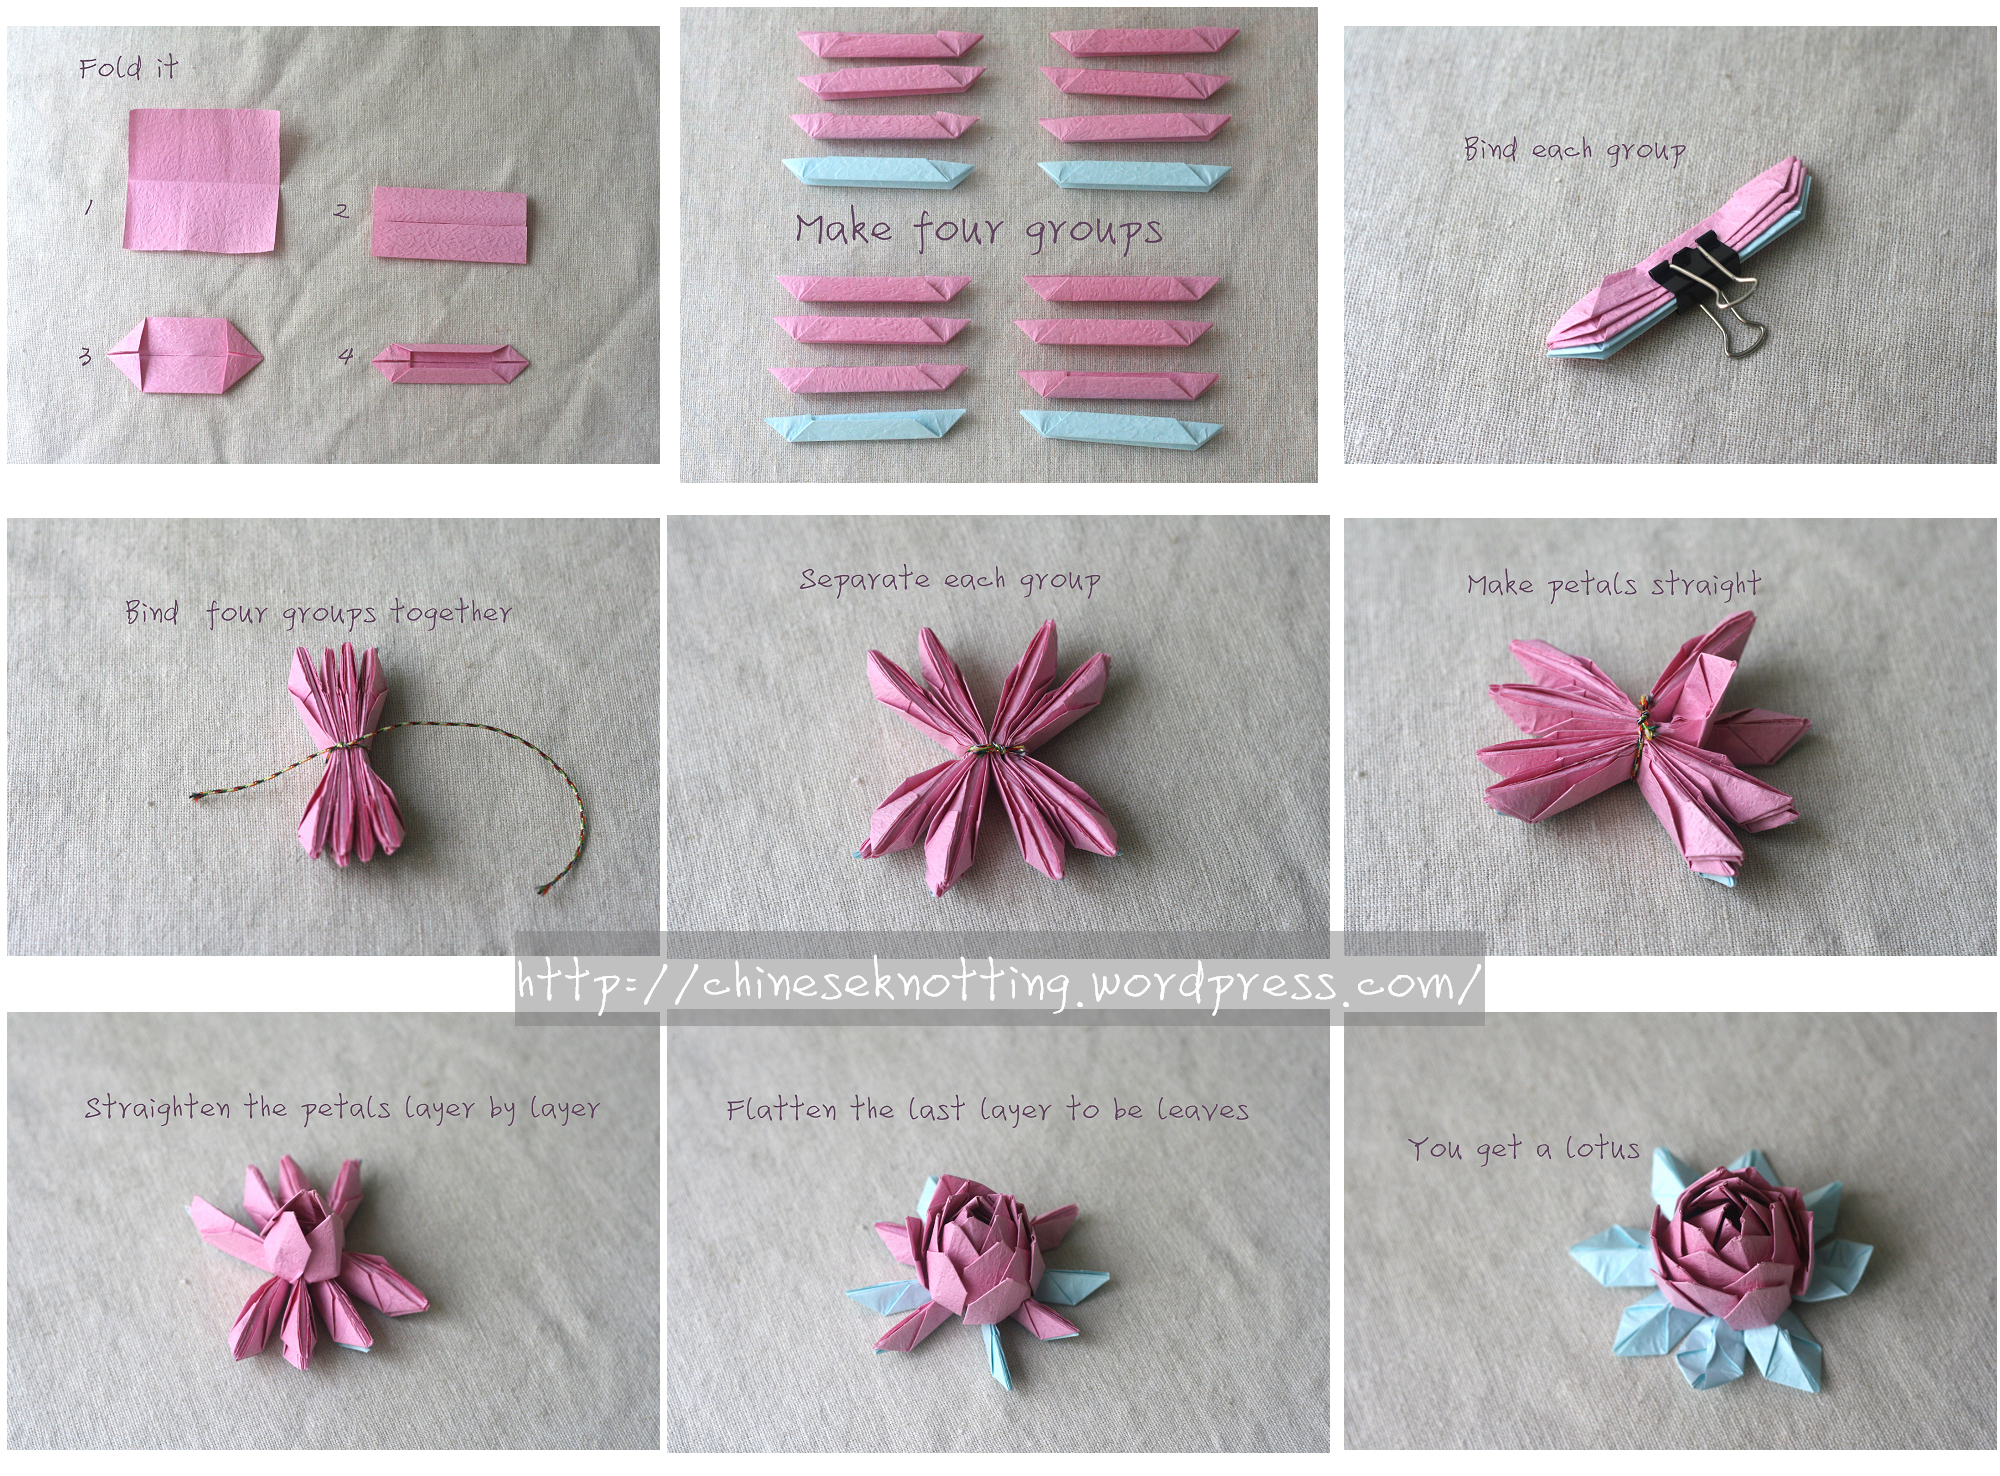 Origami lotus tutorial chineseknotting - Origami paper tutorial ...